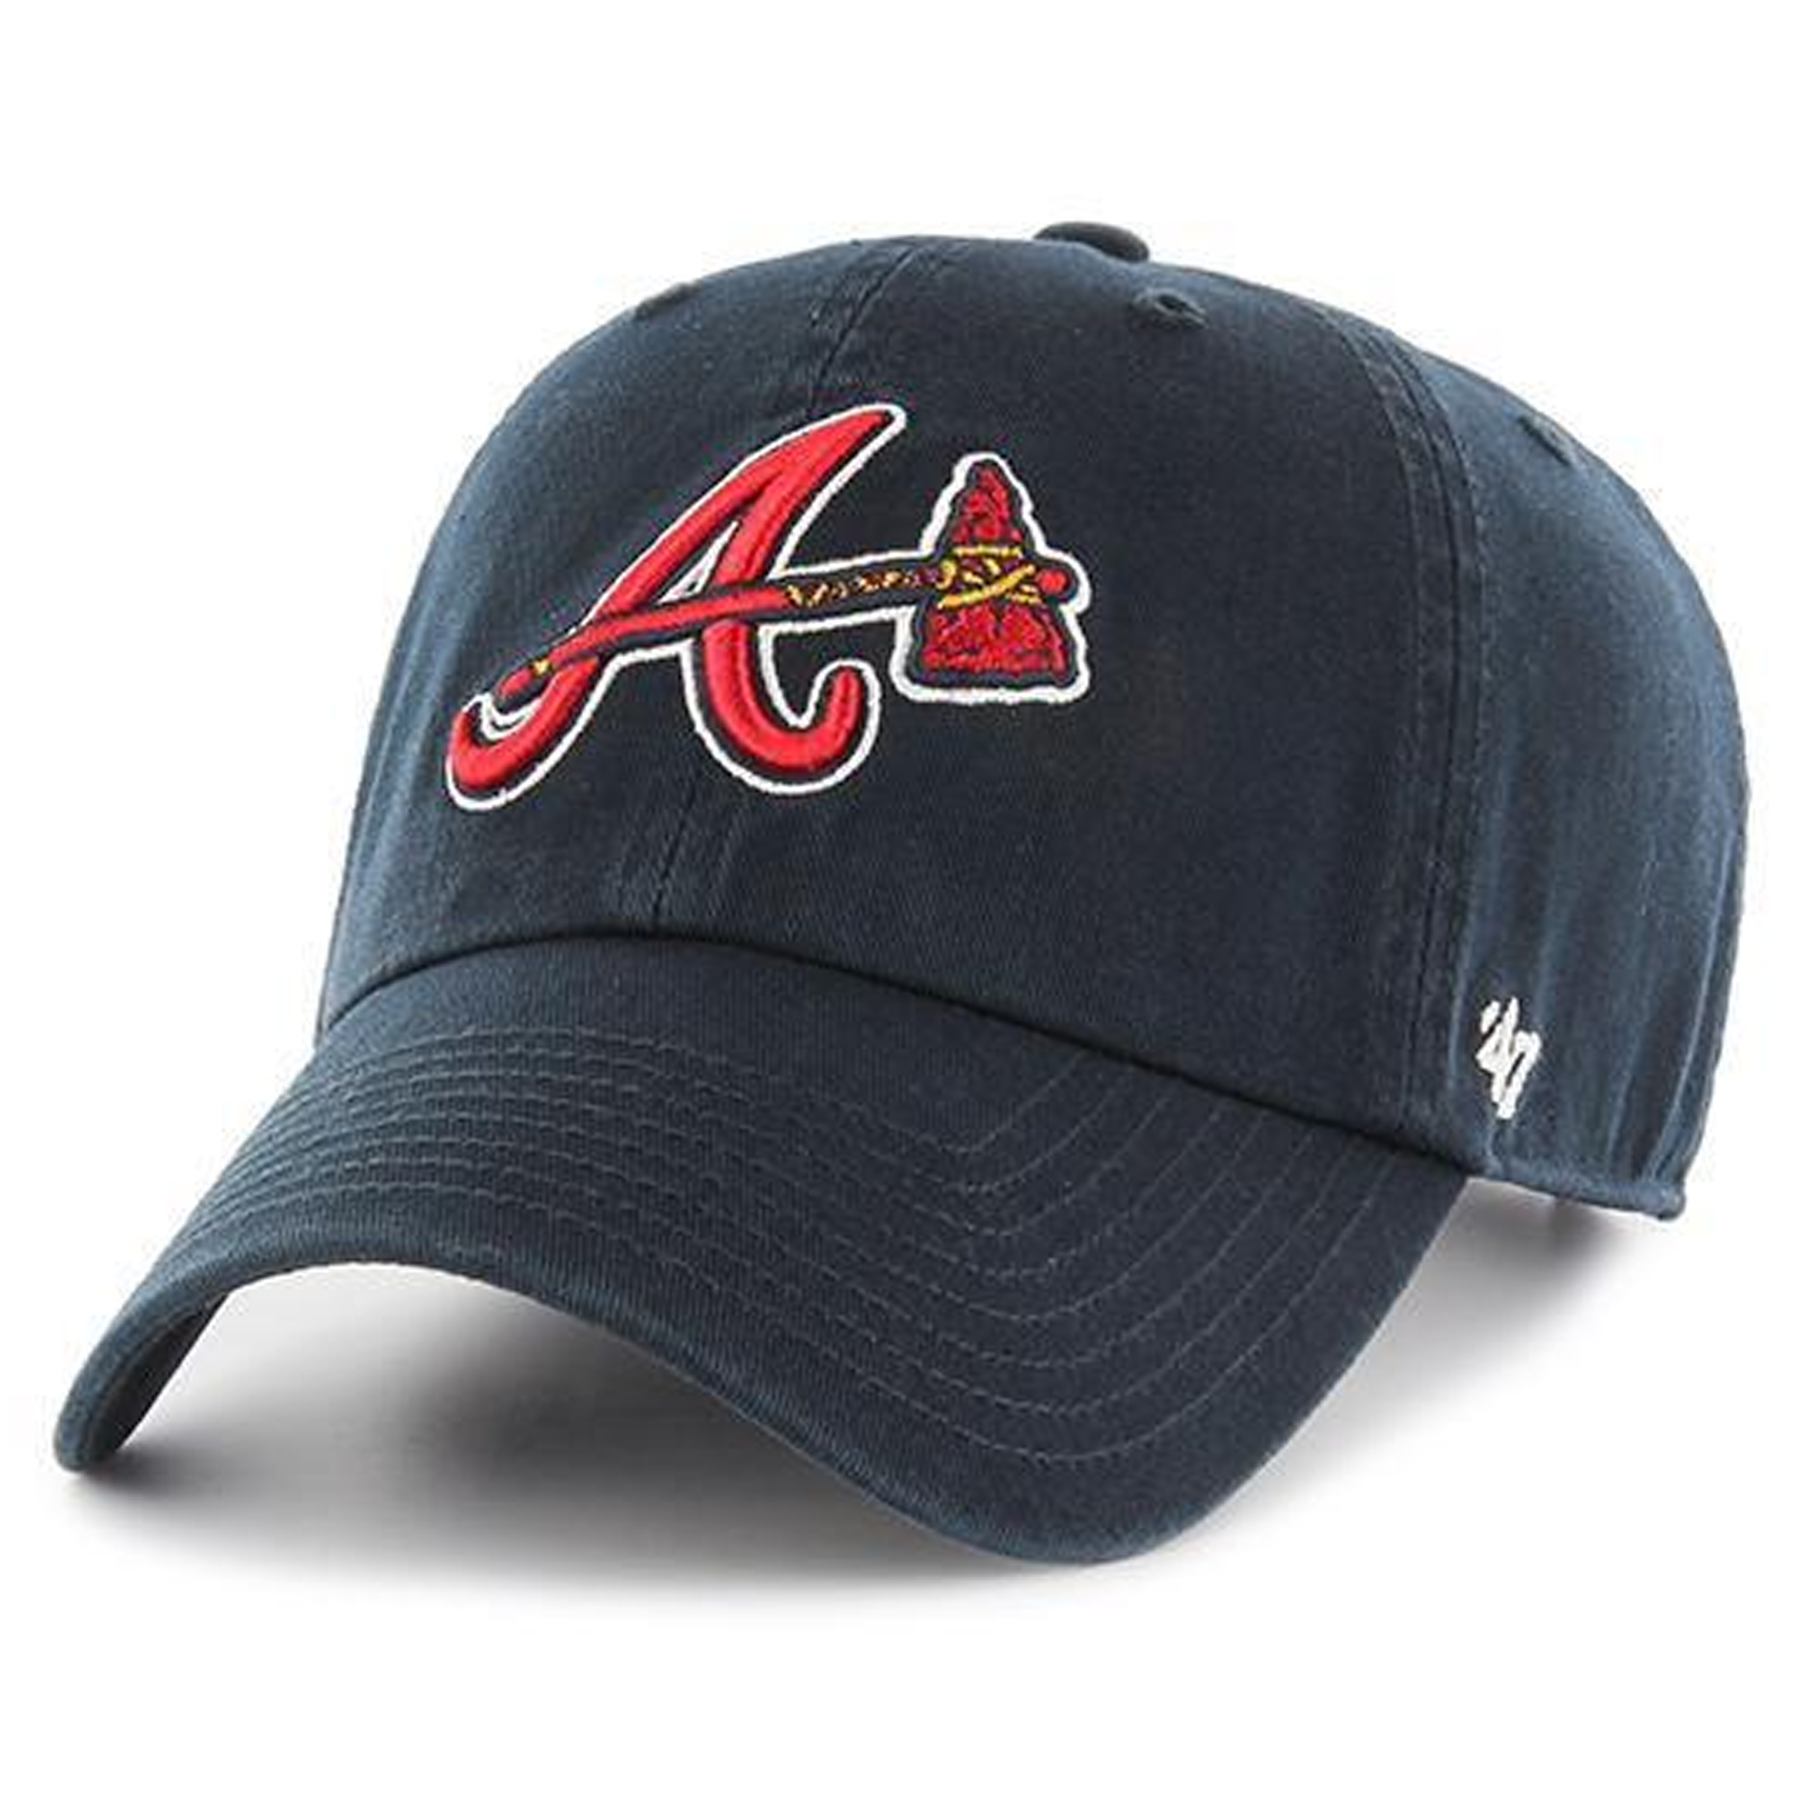 on the front of the navy blue atlanta braves dad hat is the atlanta braves  logo 31979eeec62